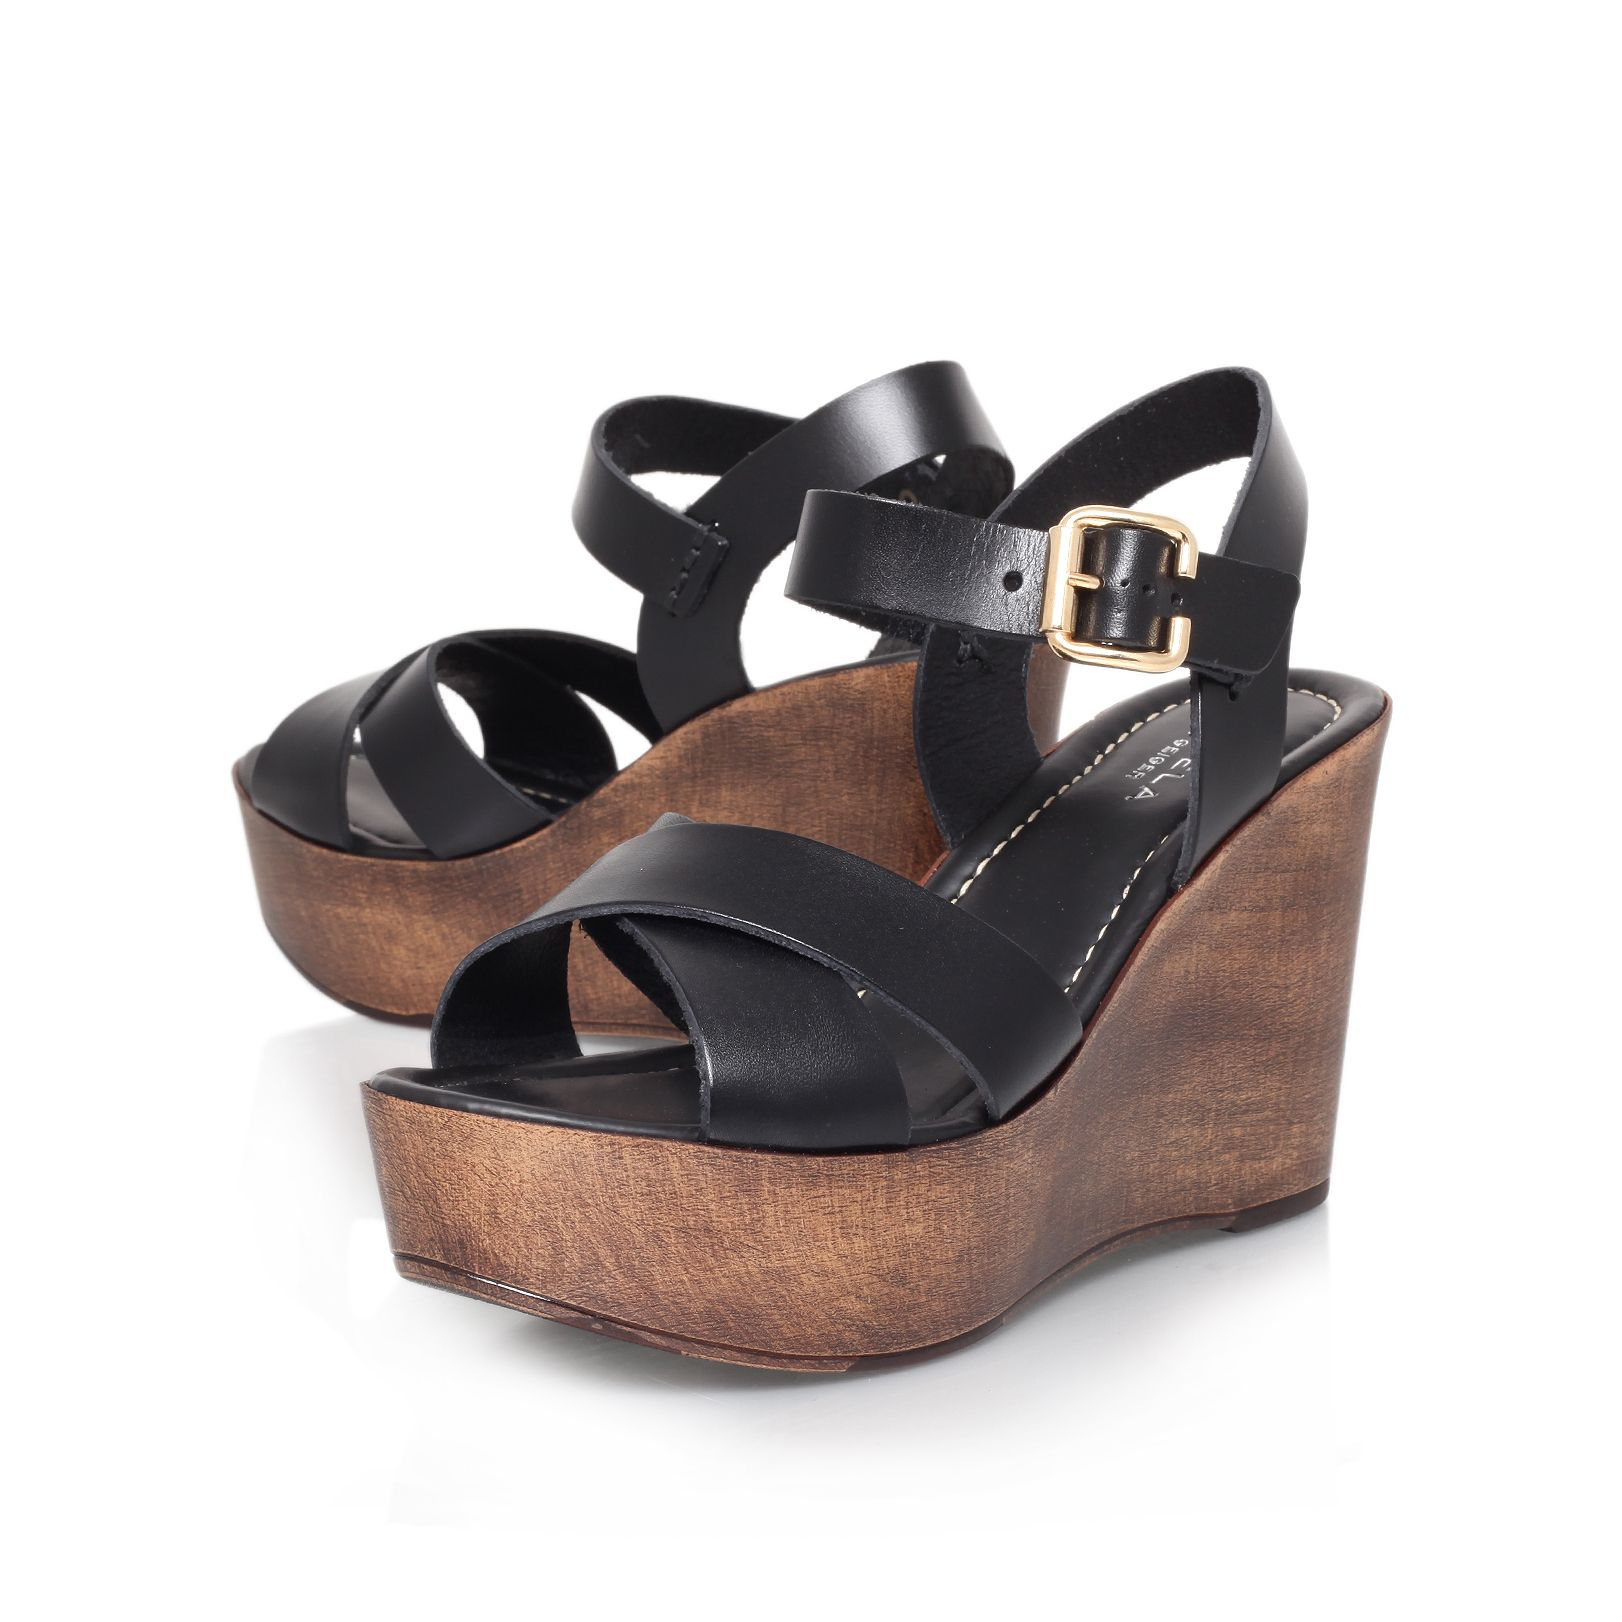 Samantha high heel platform sandals